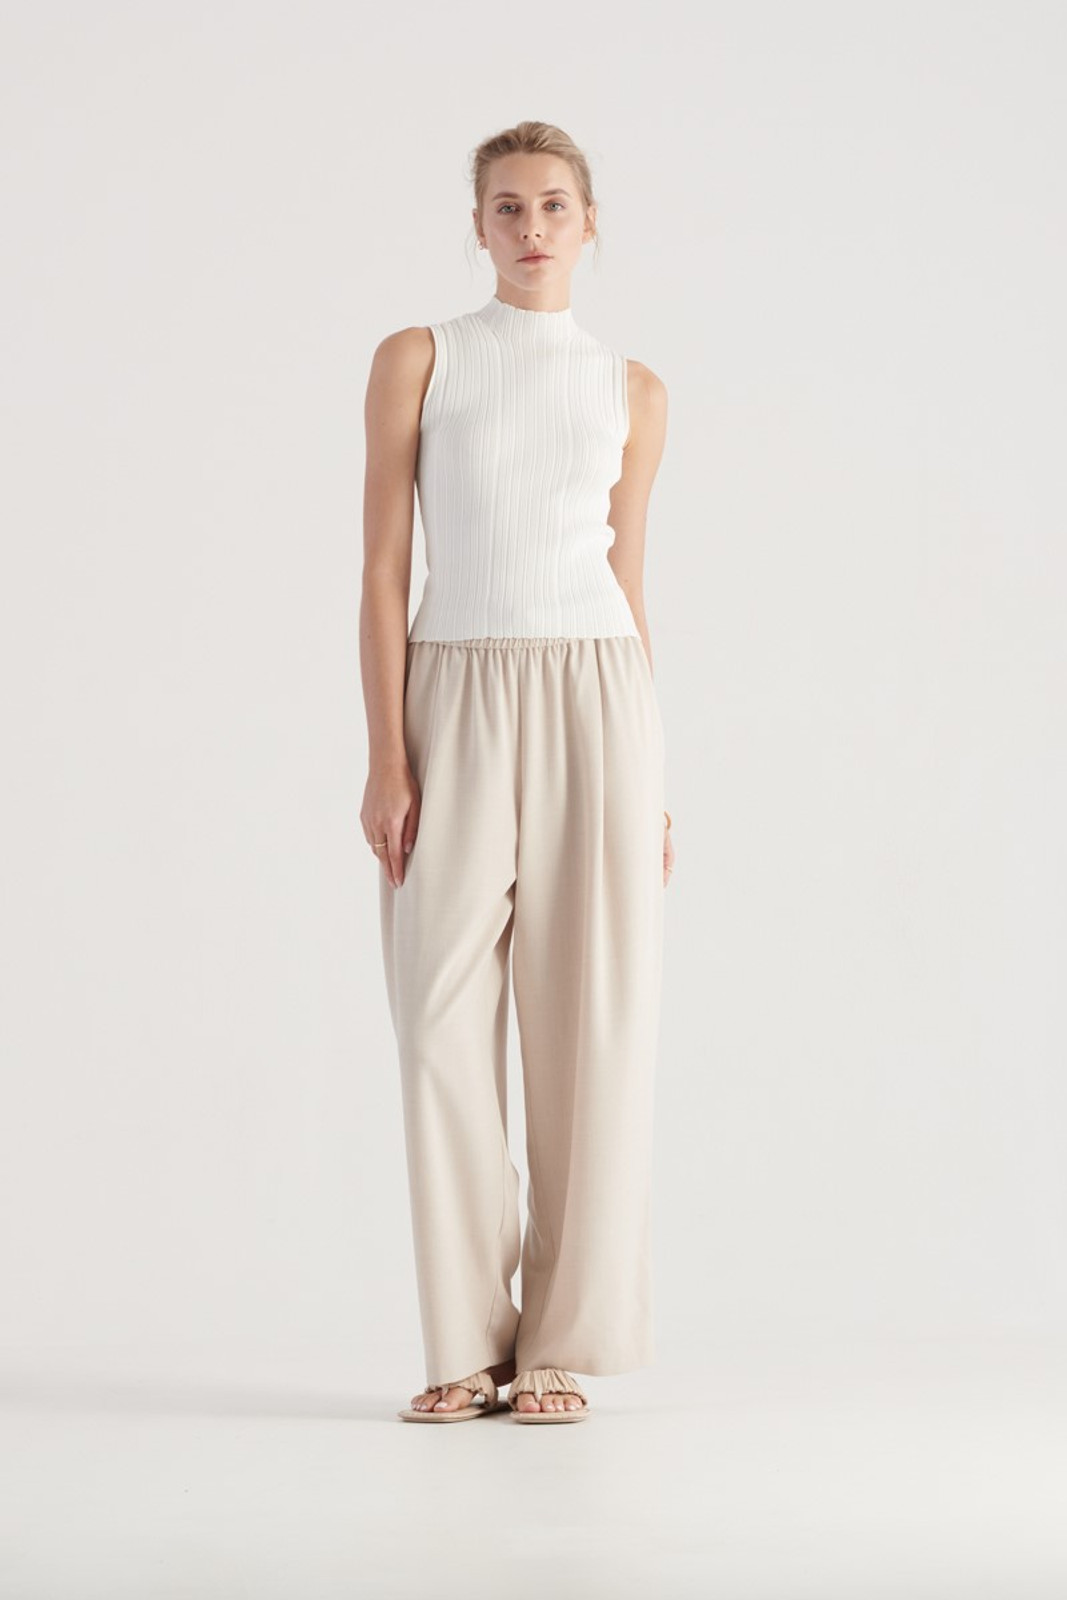 Elka Collective WOMENS White Pillar Knit Top 2